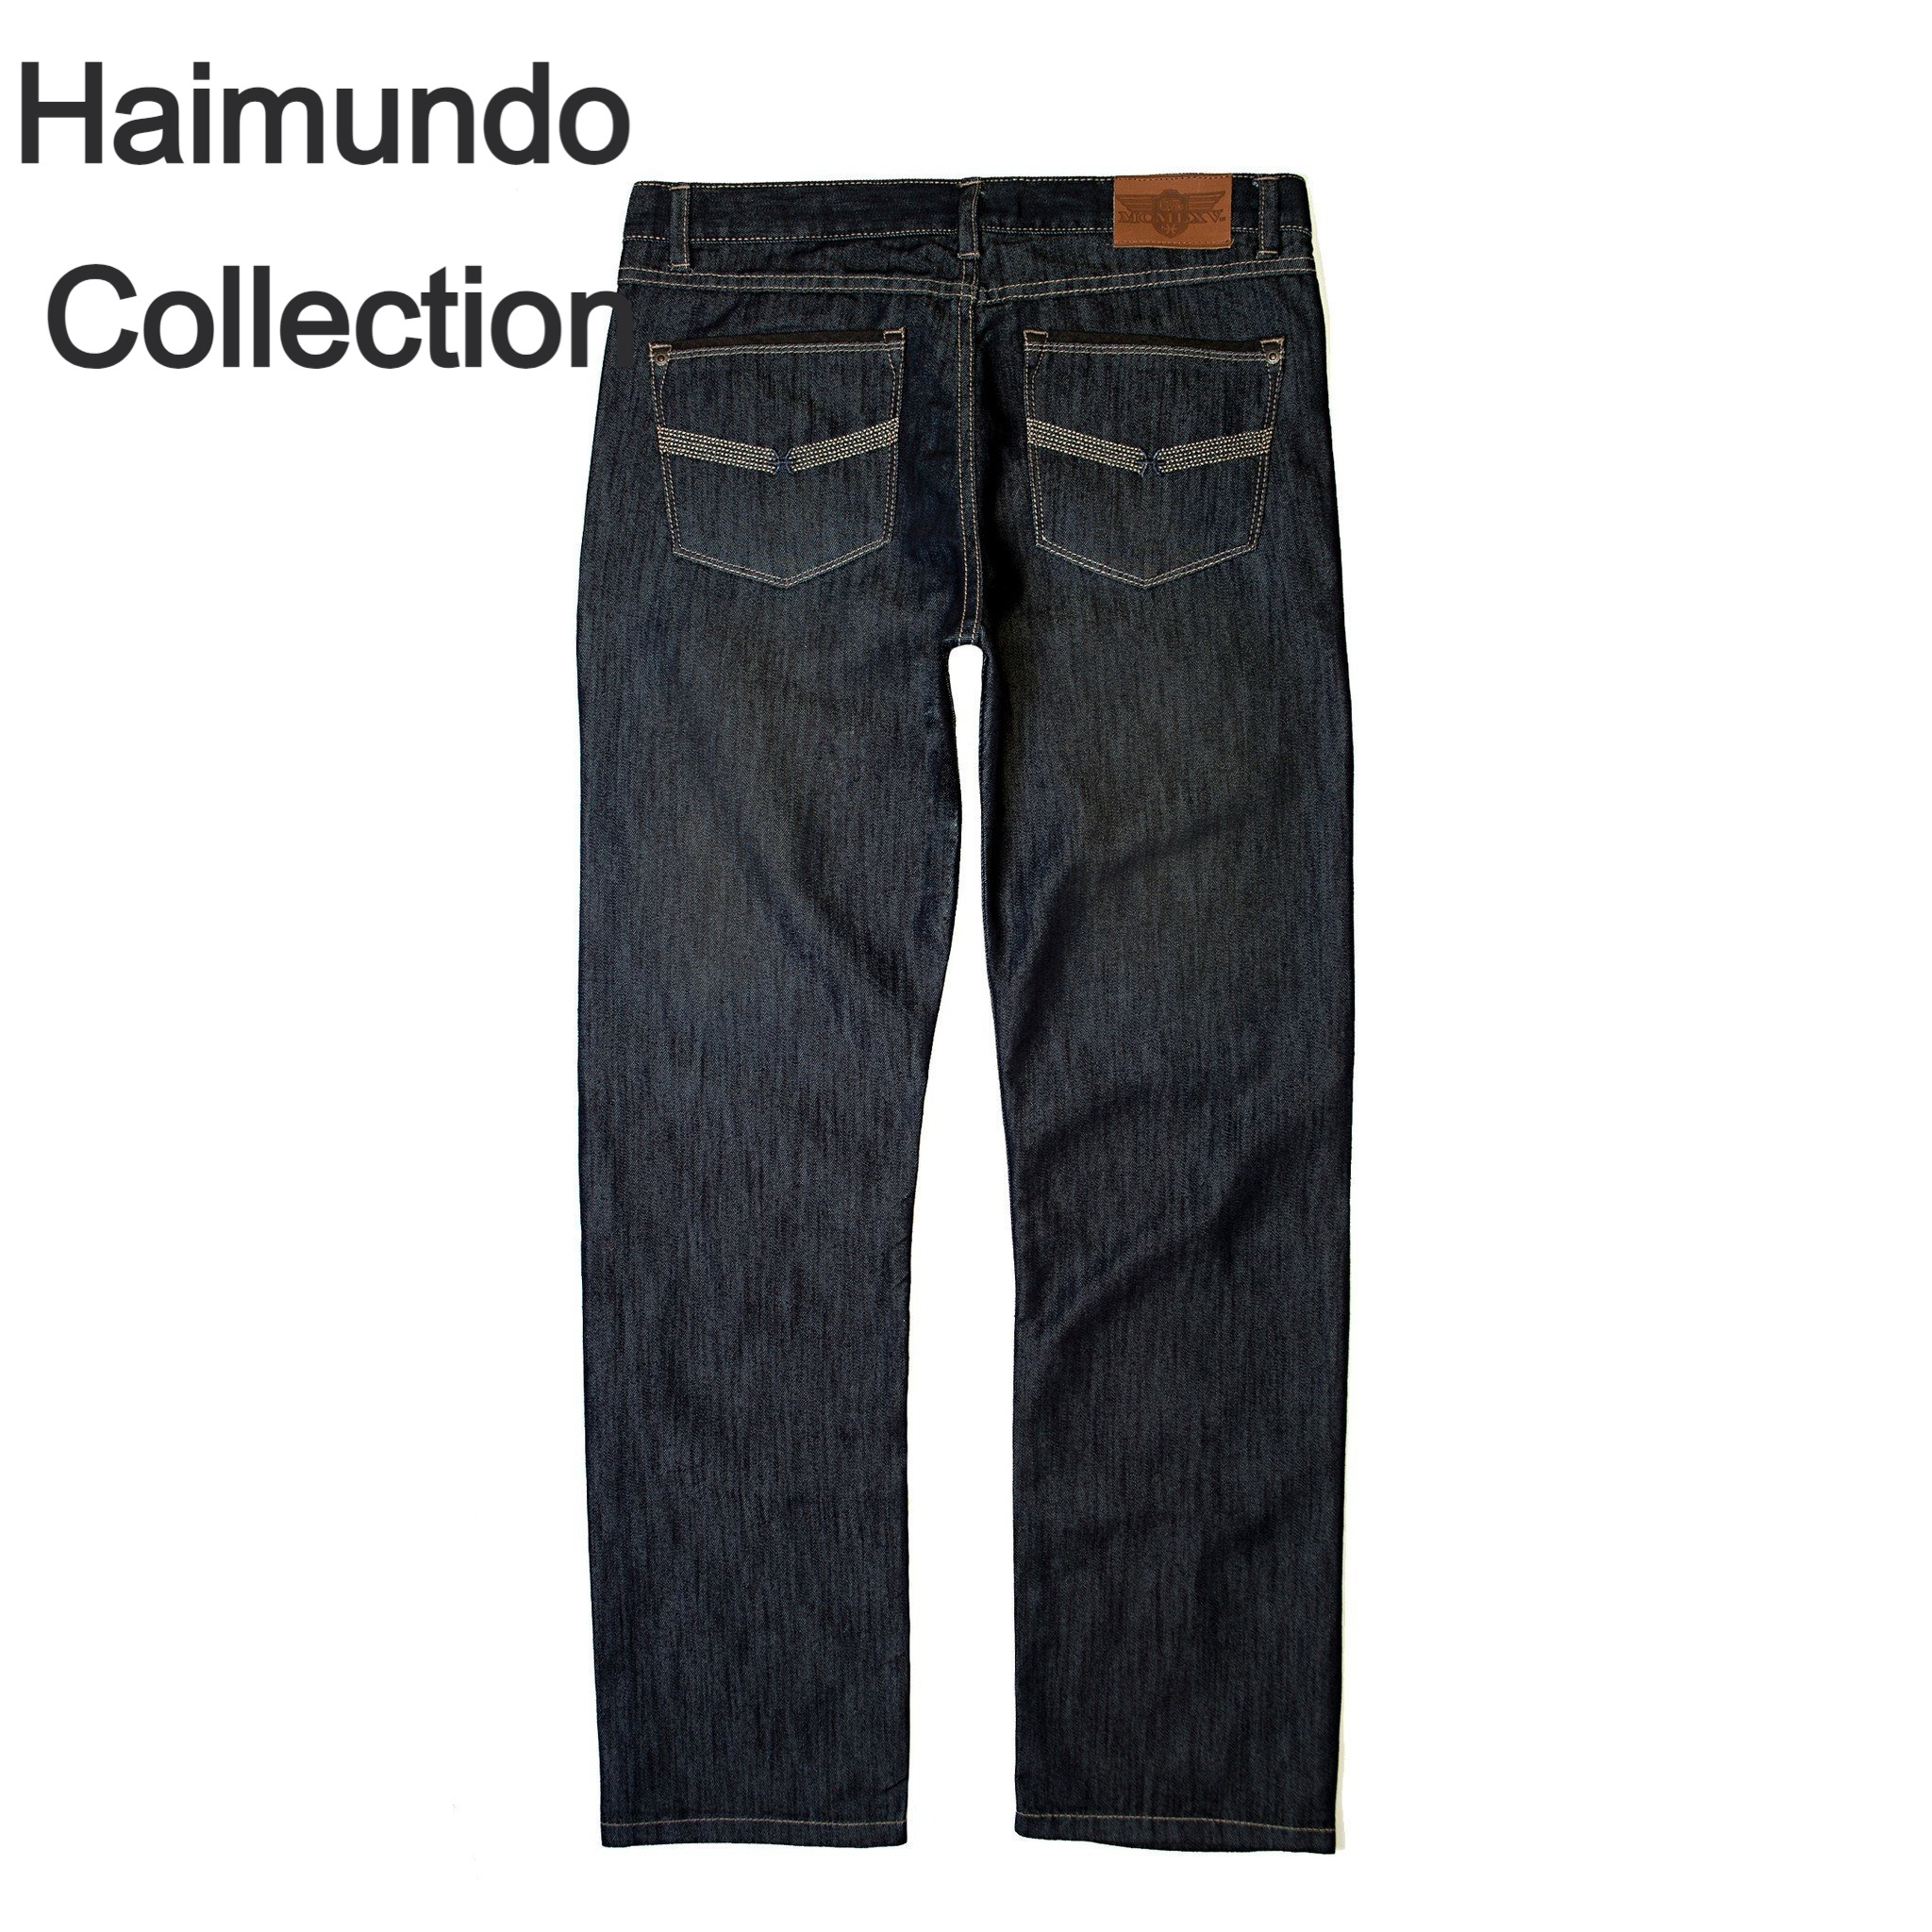 Jeans Haimundo Collection